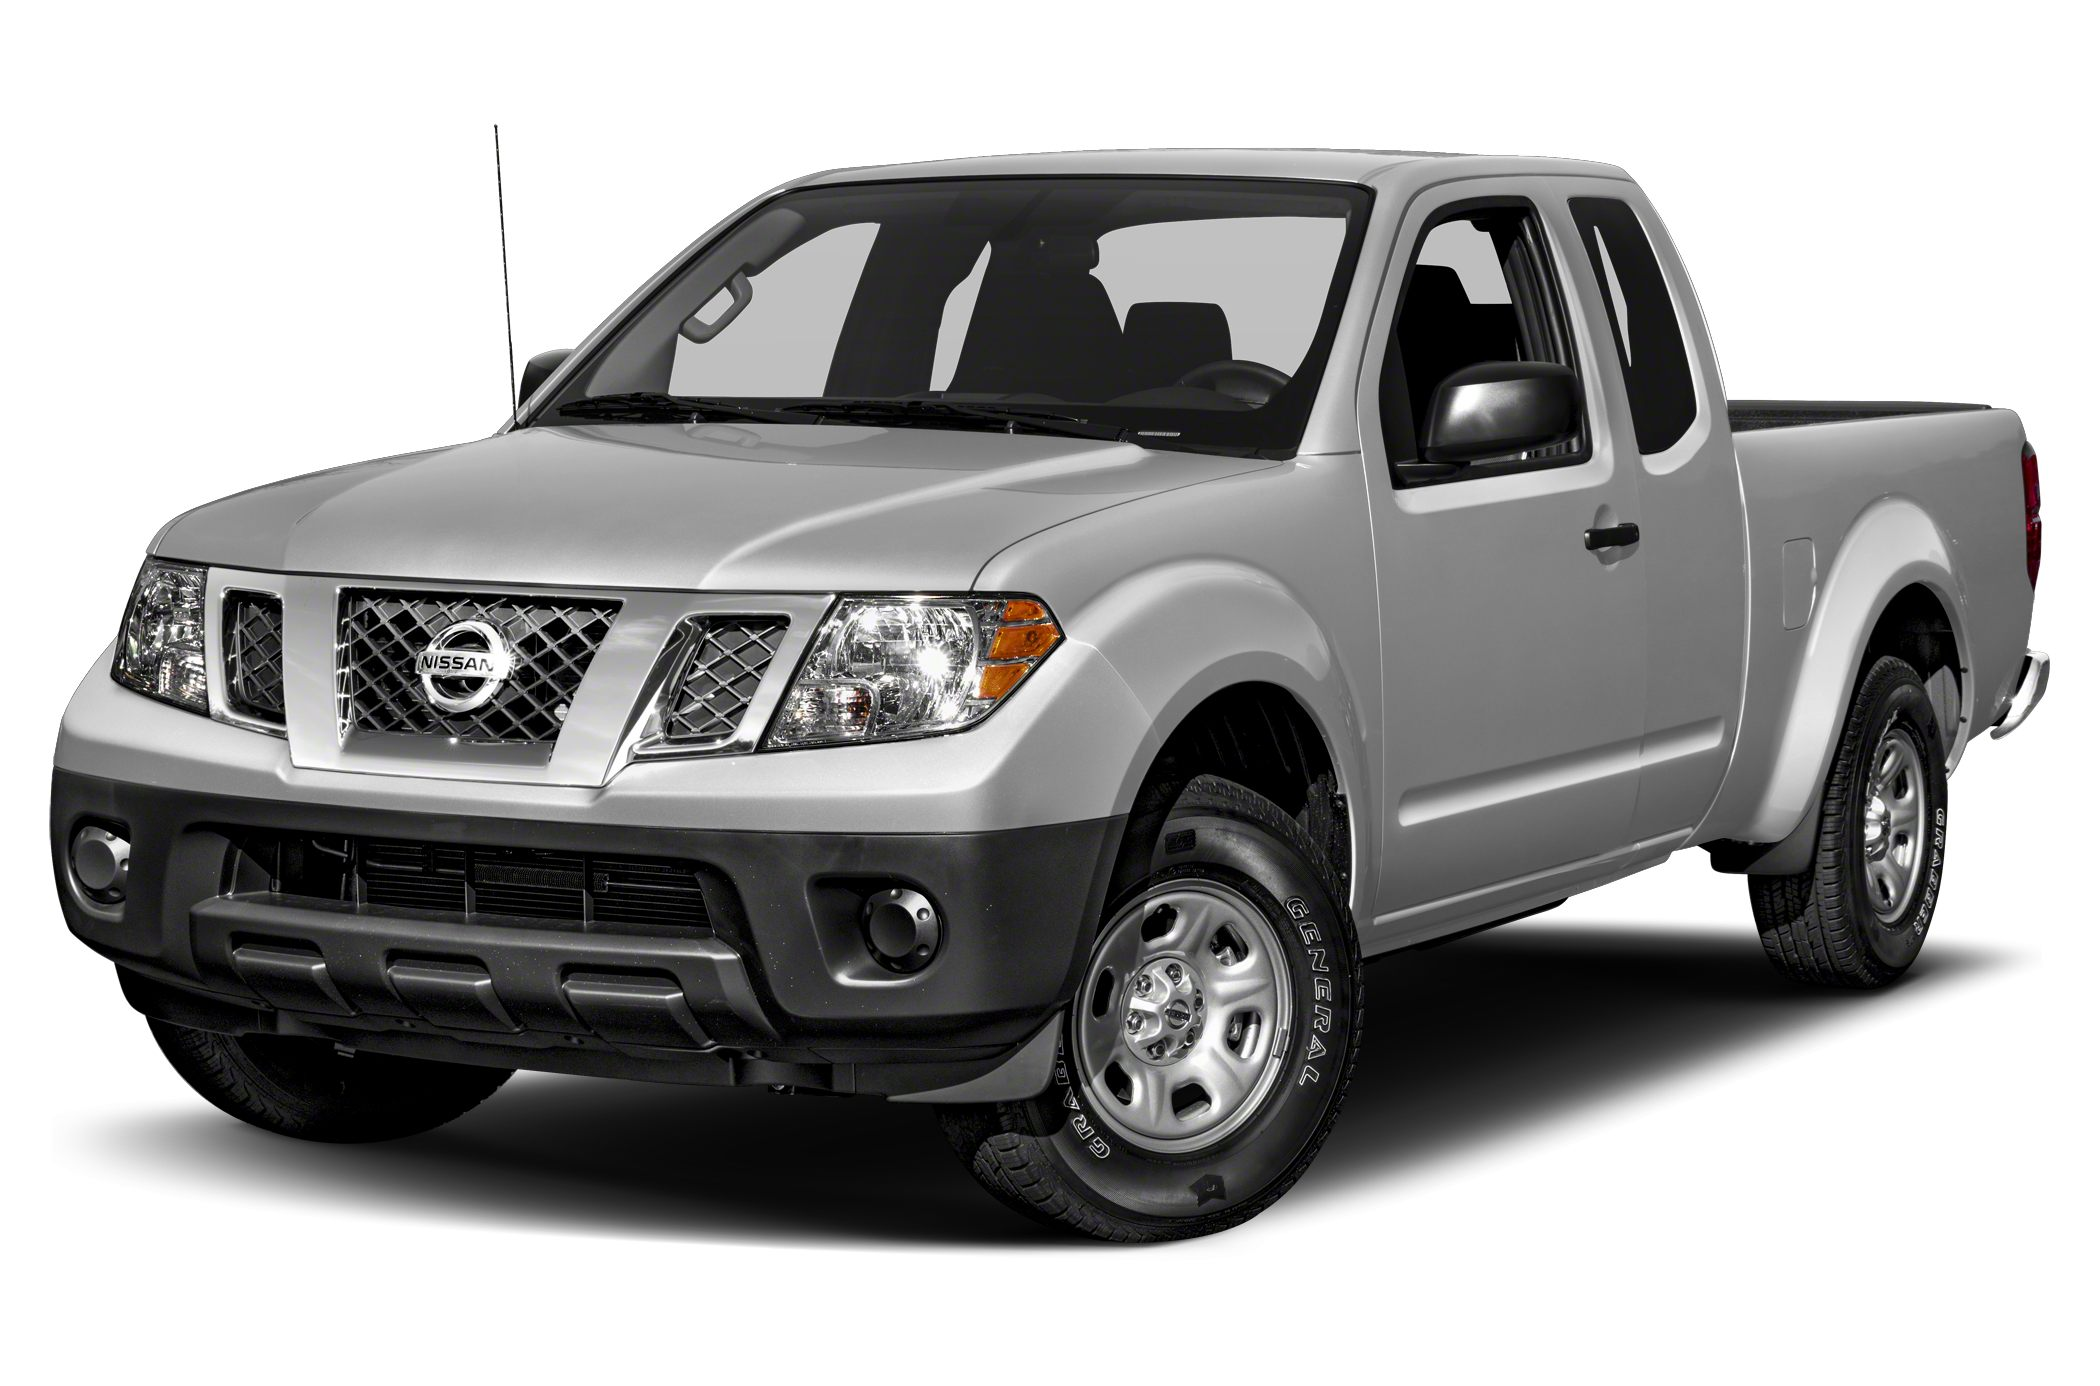 2014 nissan frontier diesel mule w poll autoblog. Black Bedroom Furniture Sets. Home Design Ideas